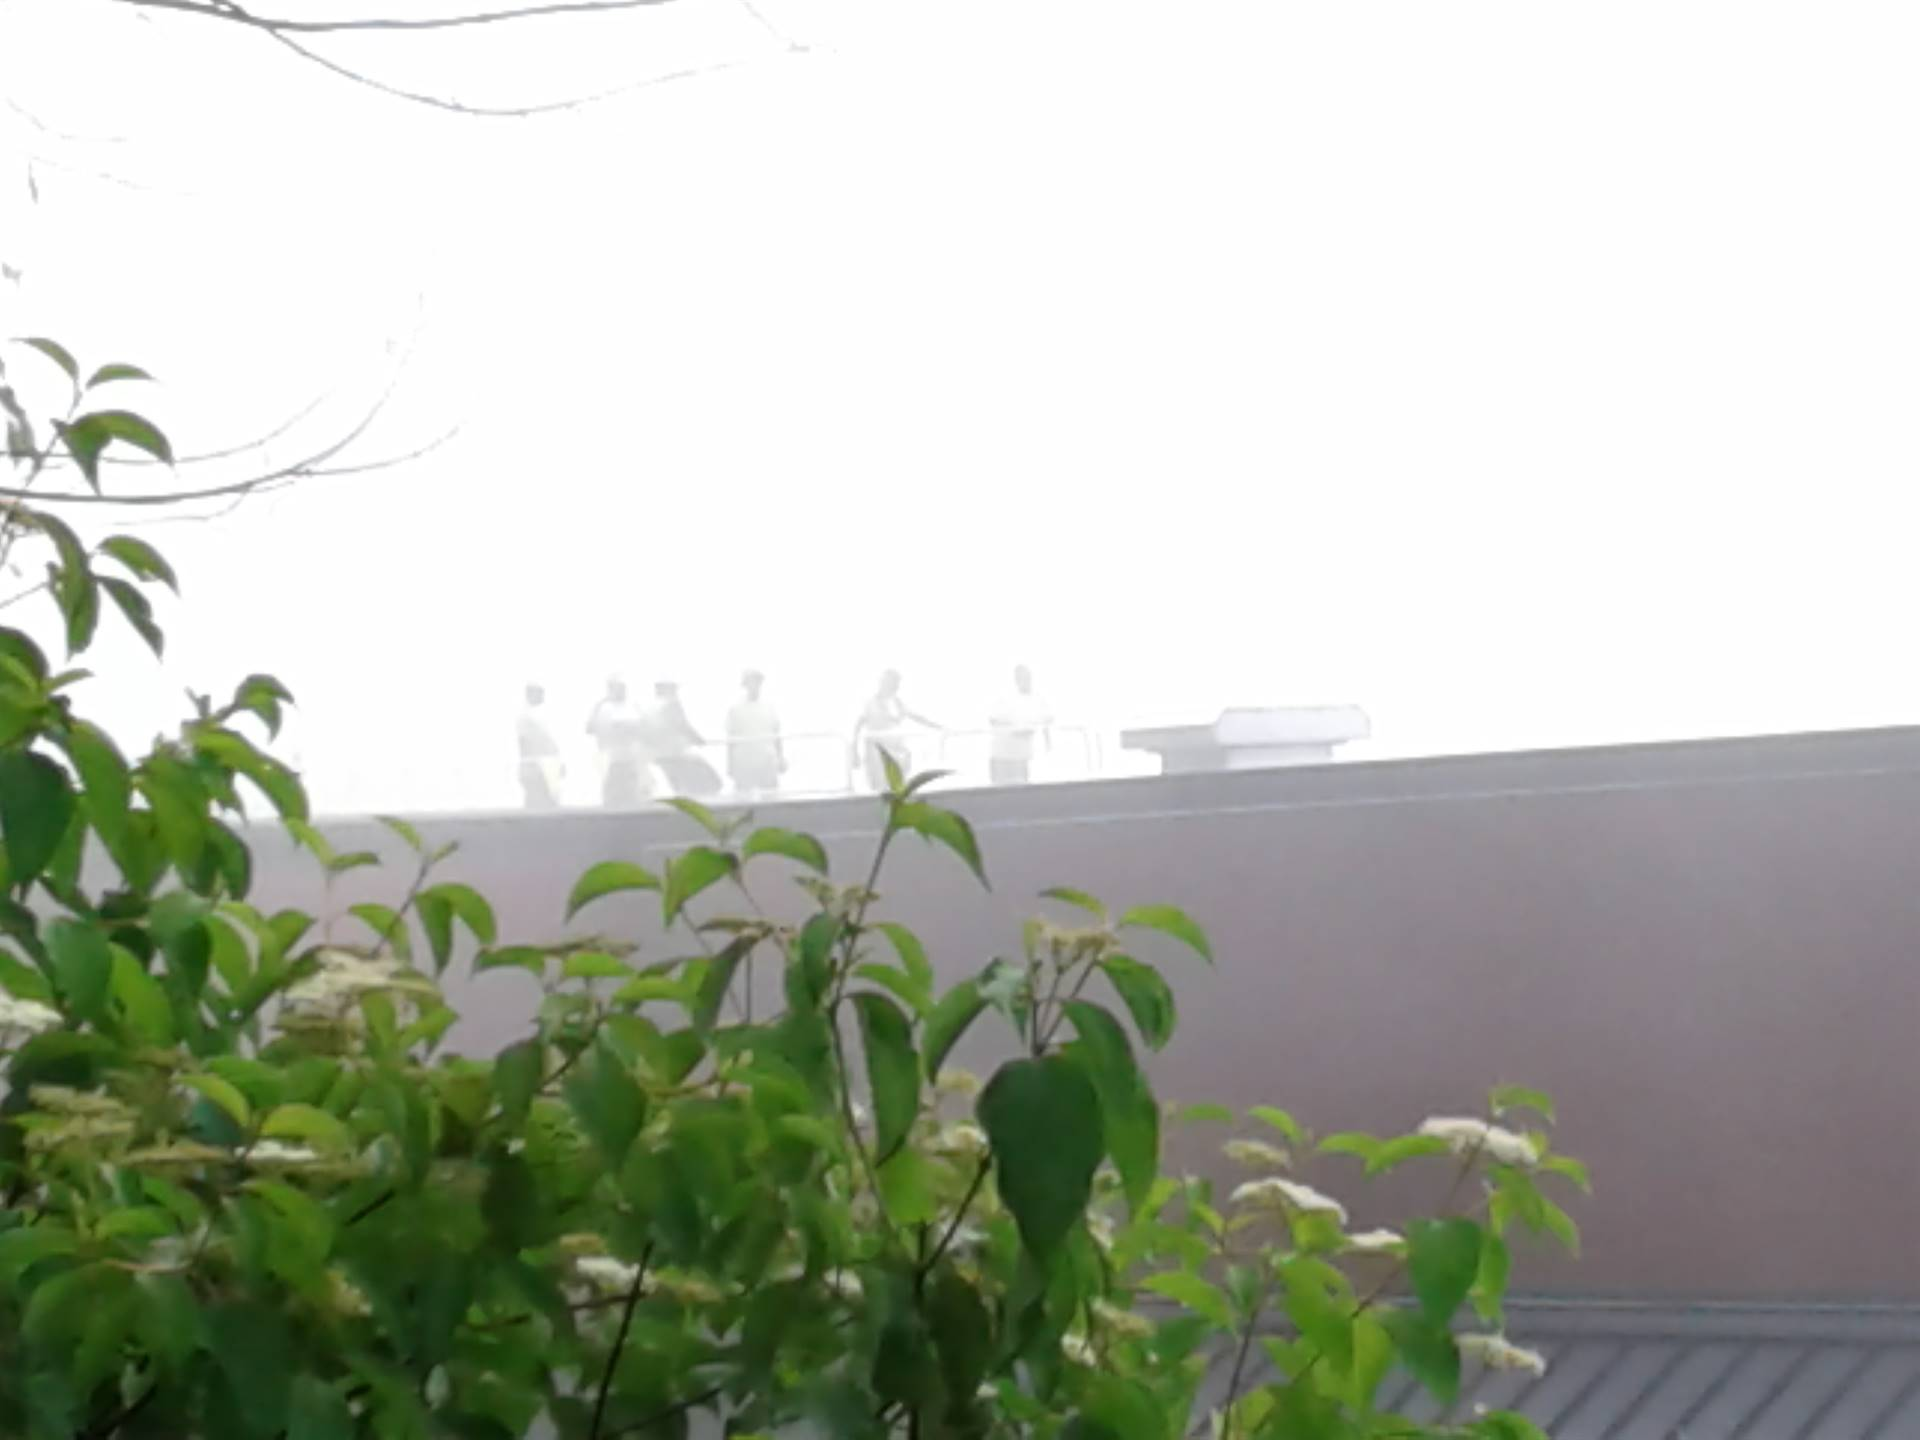 Foggy morning on the roof!